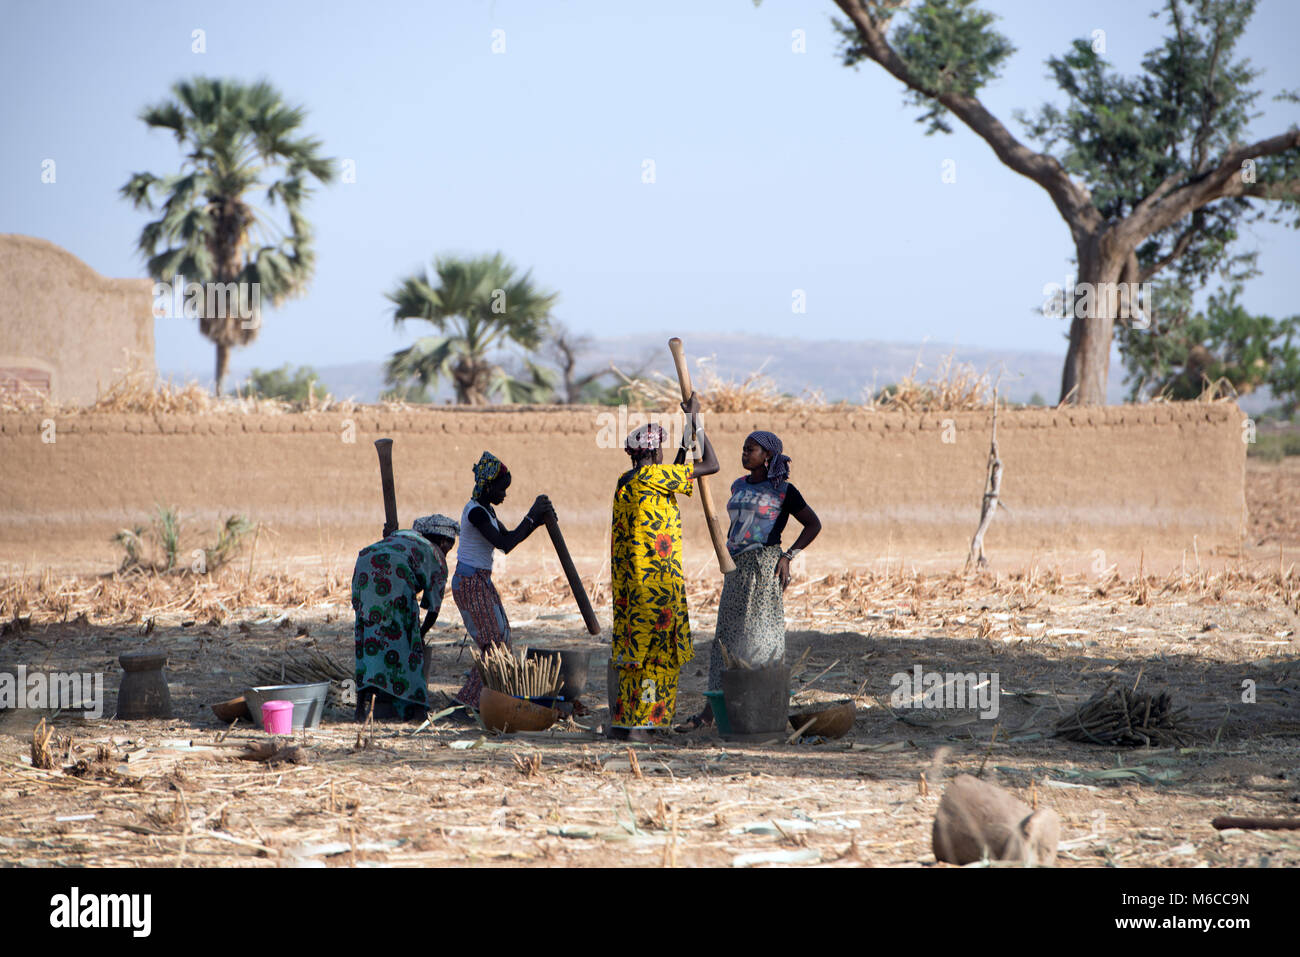 Indigenous Fulani women pounding millet by hand at harvest time. Mali, West Africa. - Stock Image